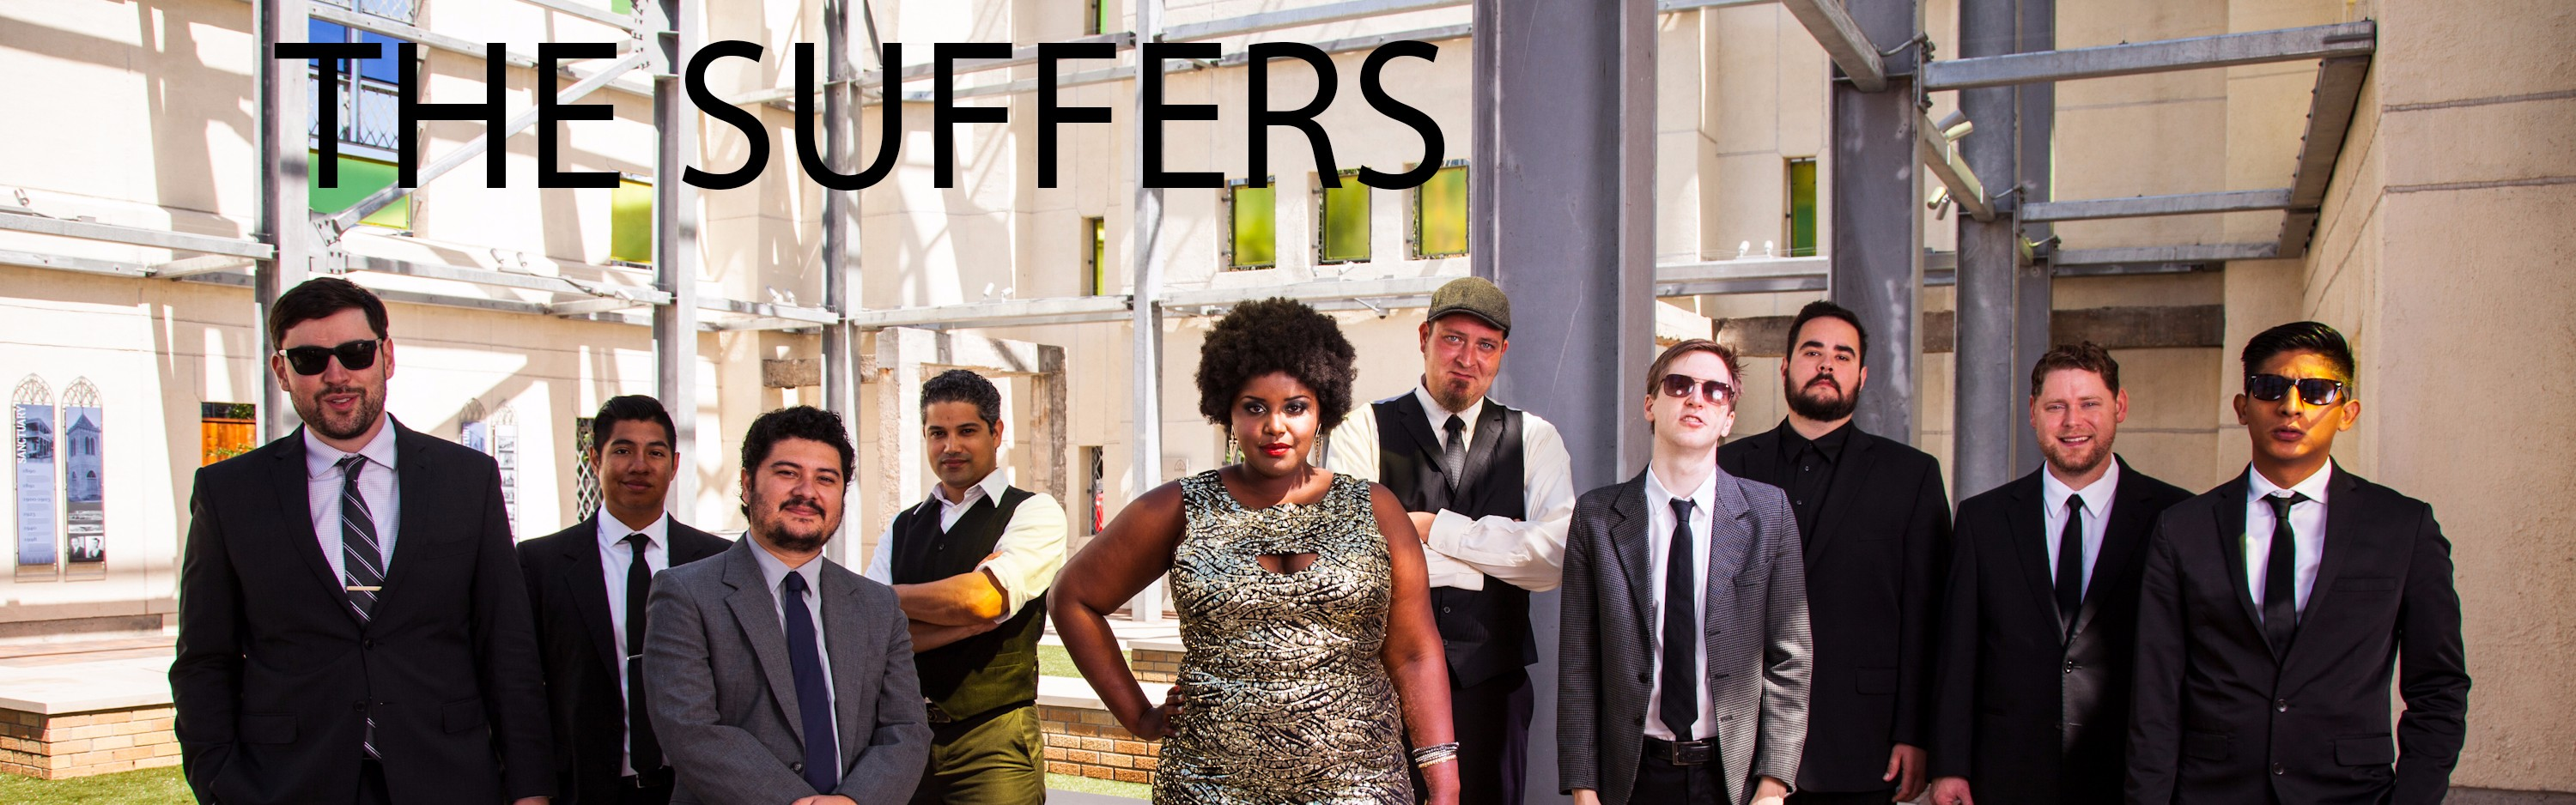 Suffers-Hi-Res-1 copy